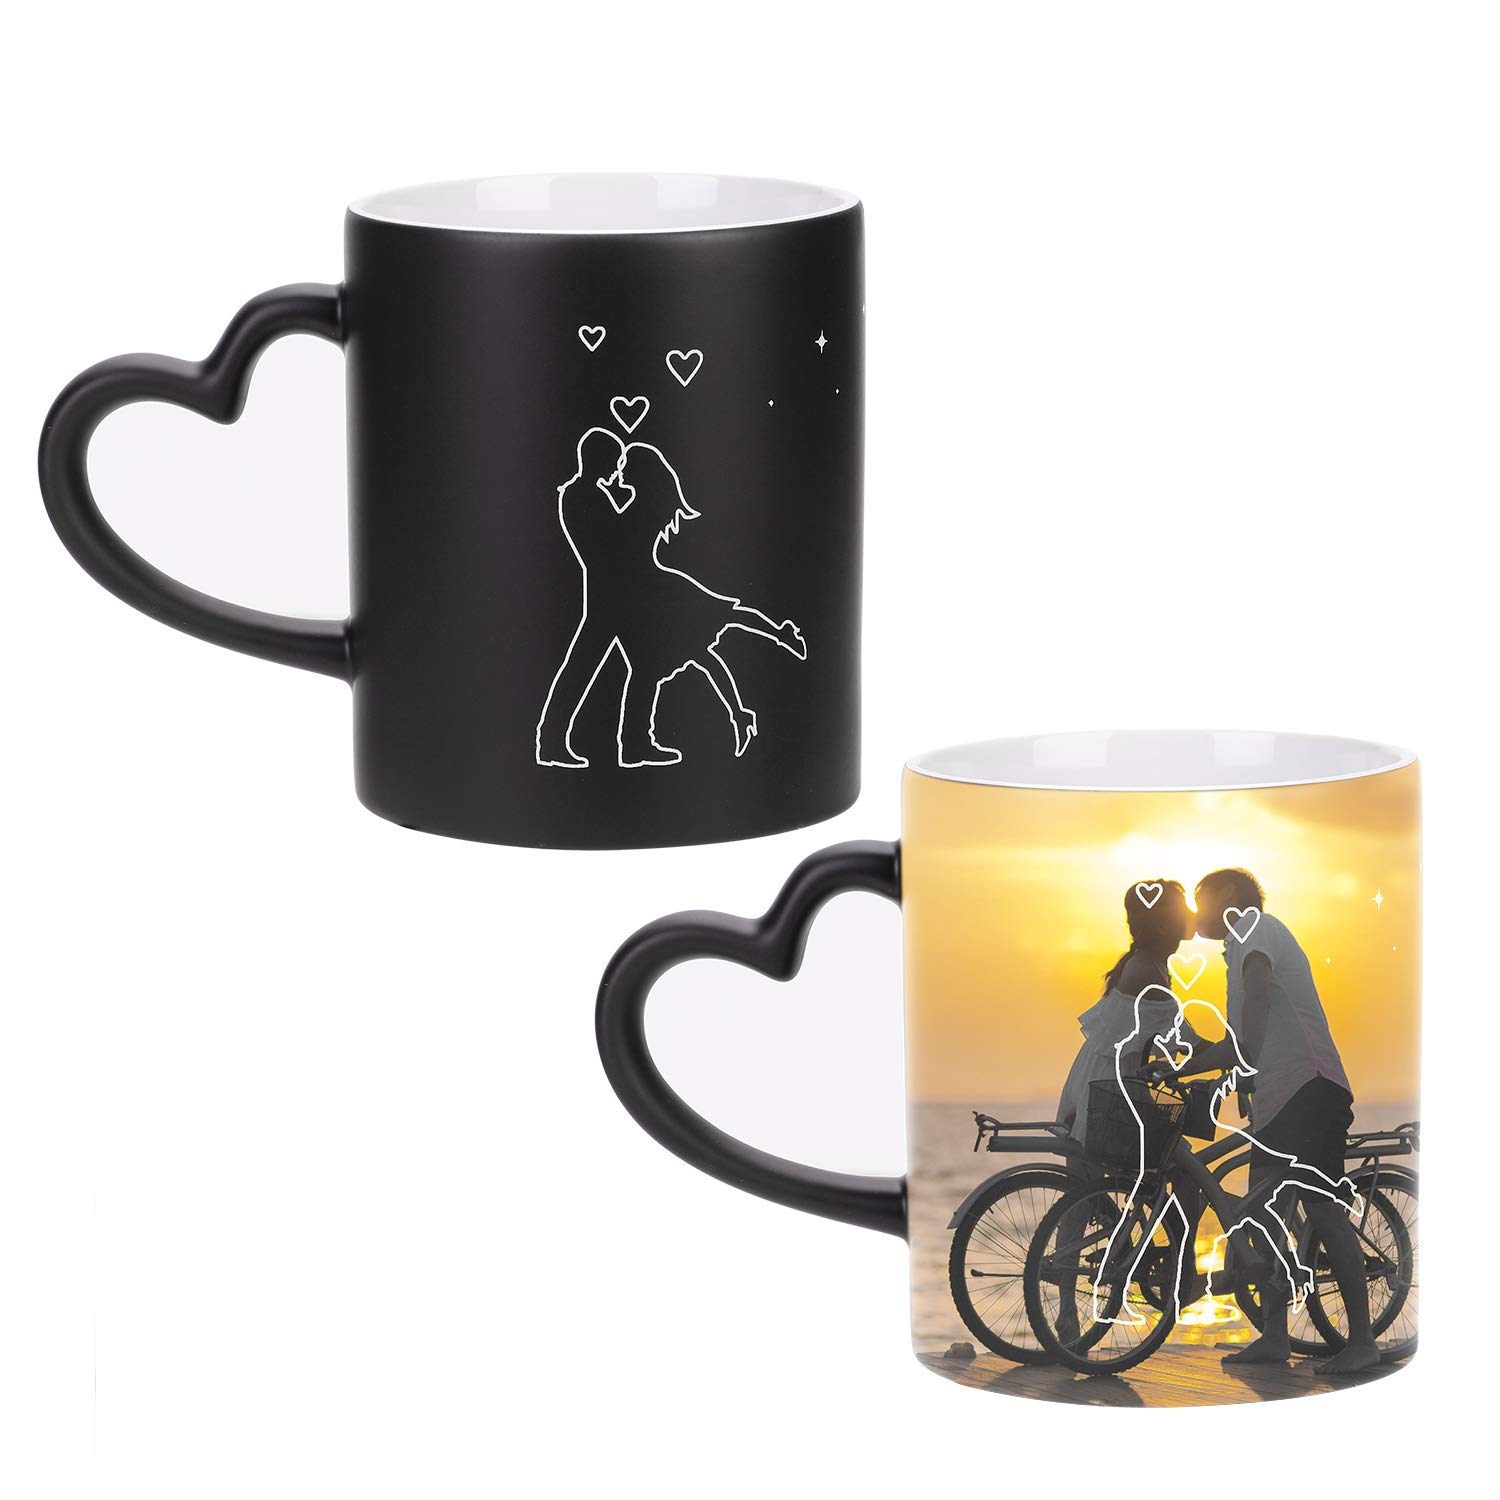 Personalized Coffee Mugs Custom Color Changing Photo Mugs Customized DIY Add Photo Picture Text Print Hot Heat Sensitive Cup Ceramic Custom Mug Families Friends Birthday Christmas Surprise